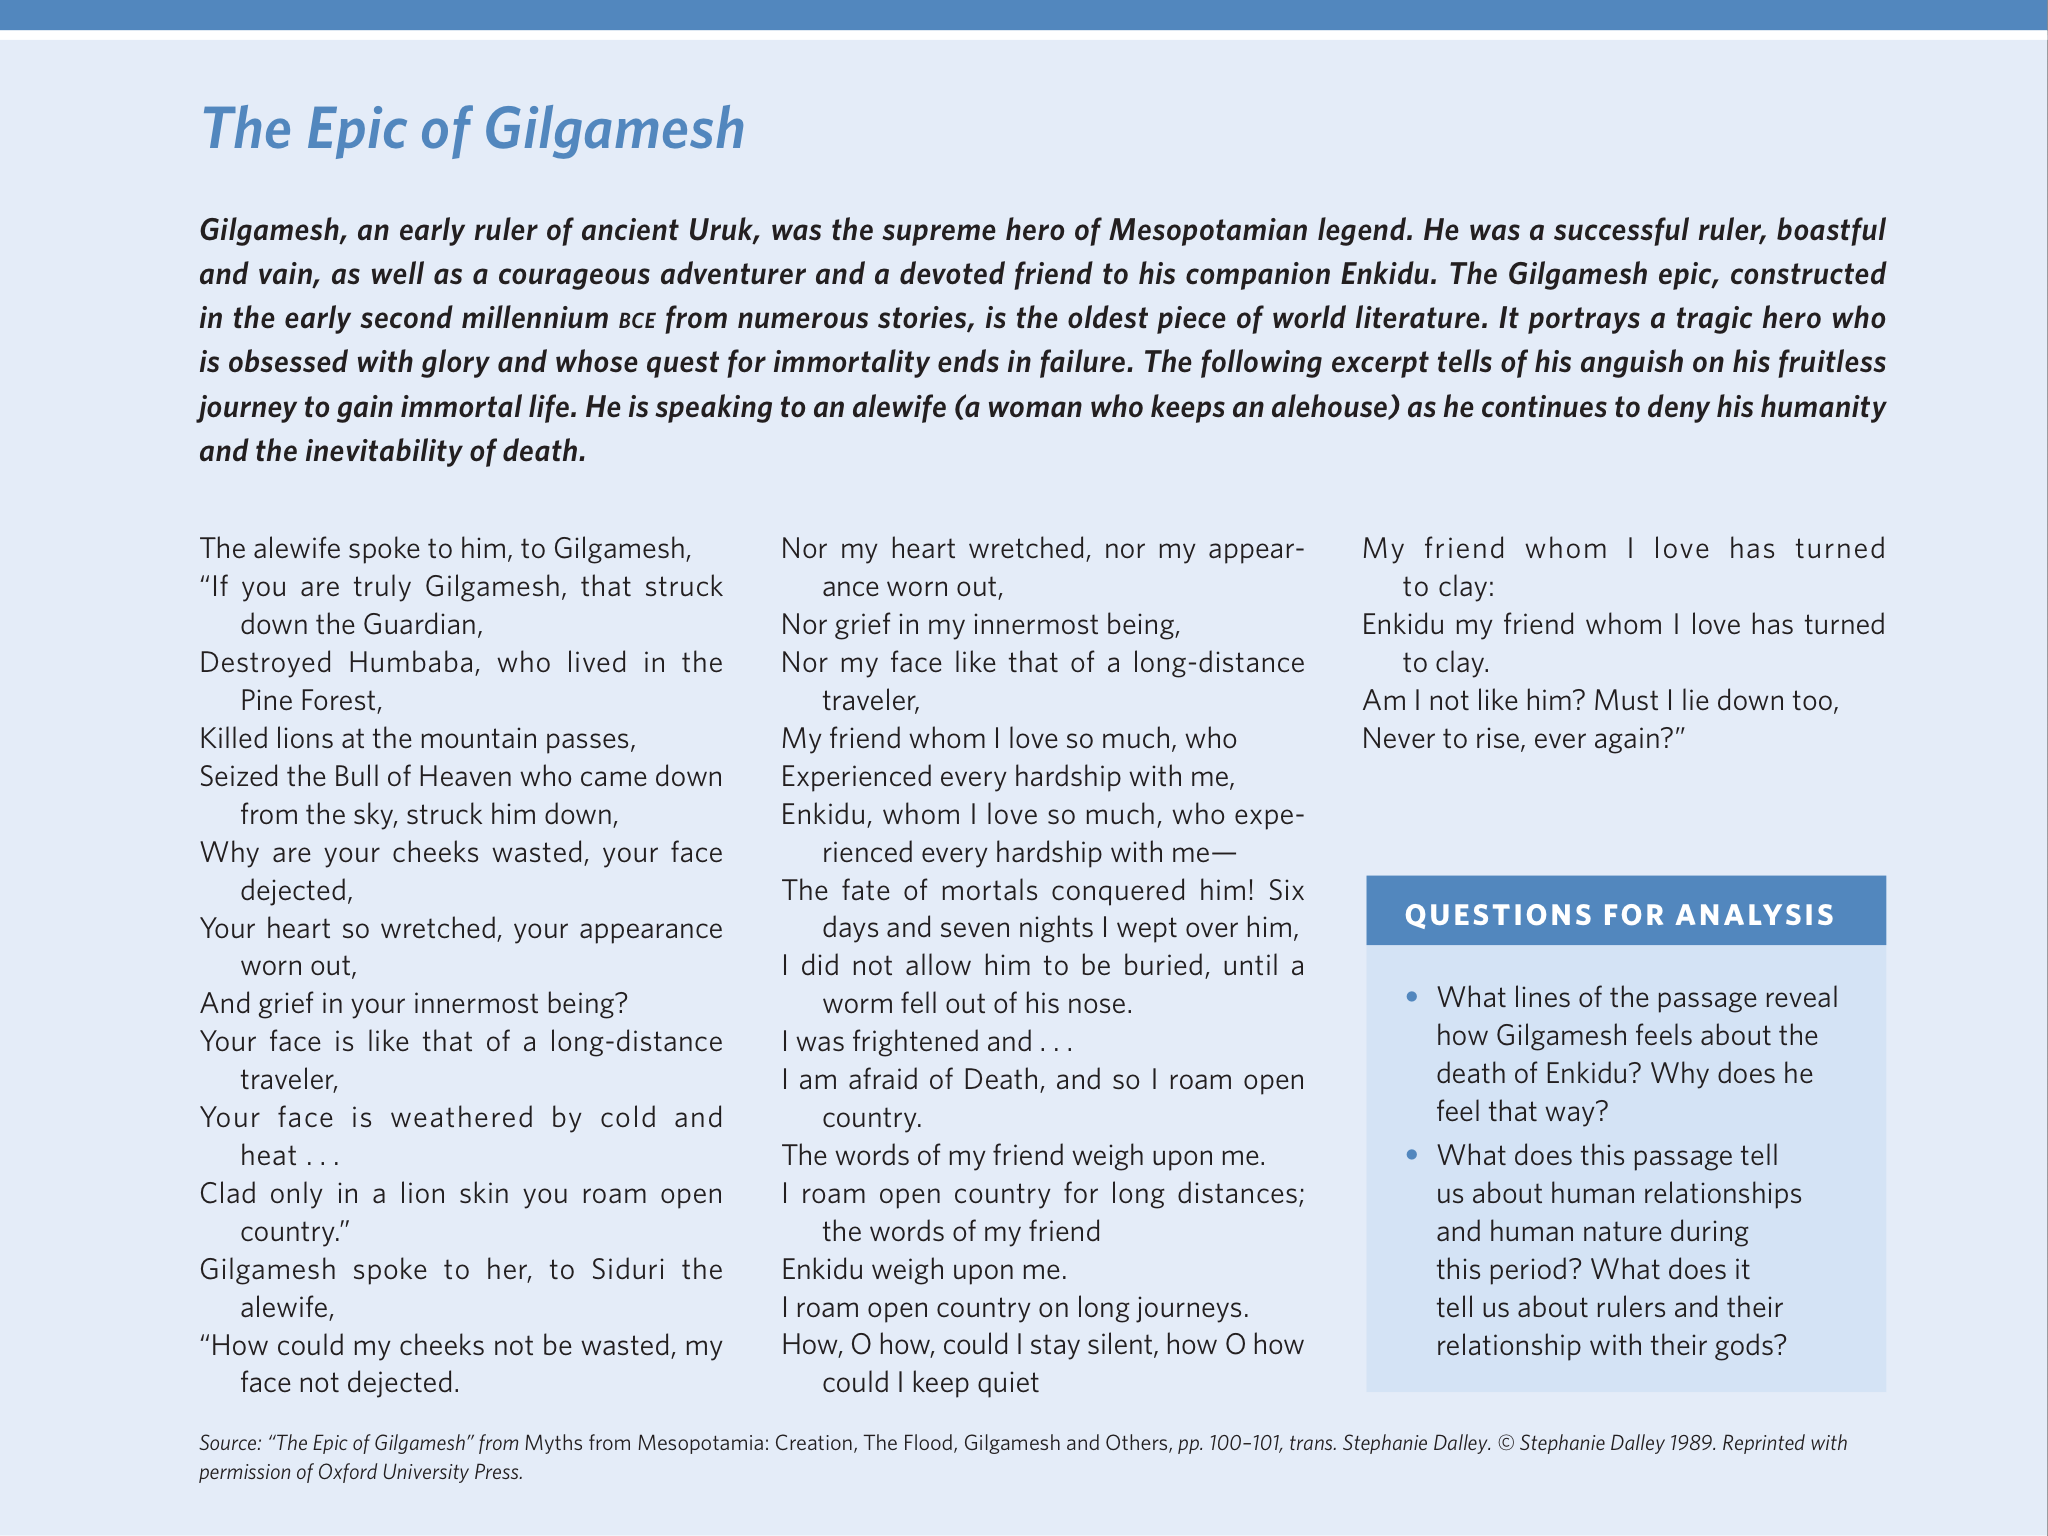 essay about the epic of gilgamesh Free essay: the epic of gilgamesh is an fascinating mesopotamian epic that  dates back to ancient years the story focuses on a king by the name of  gilgamesh.